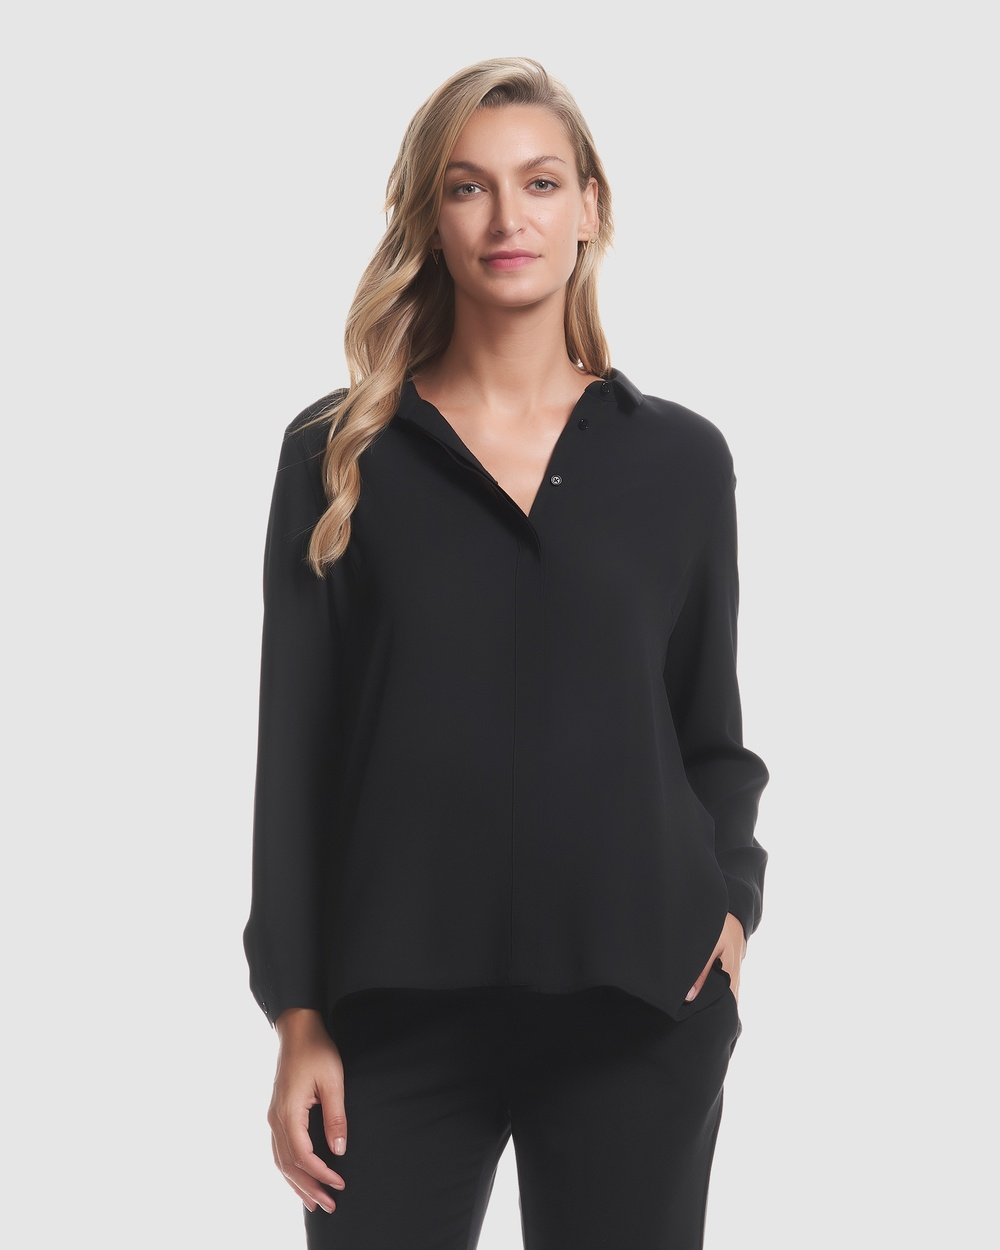 Soon Maternity Eva Pleat Back Shirt Tops Black Eva Pleat Back Shirt